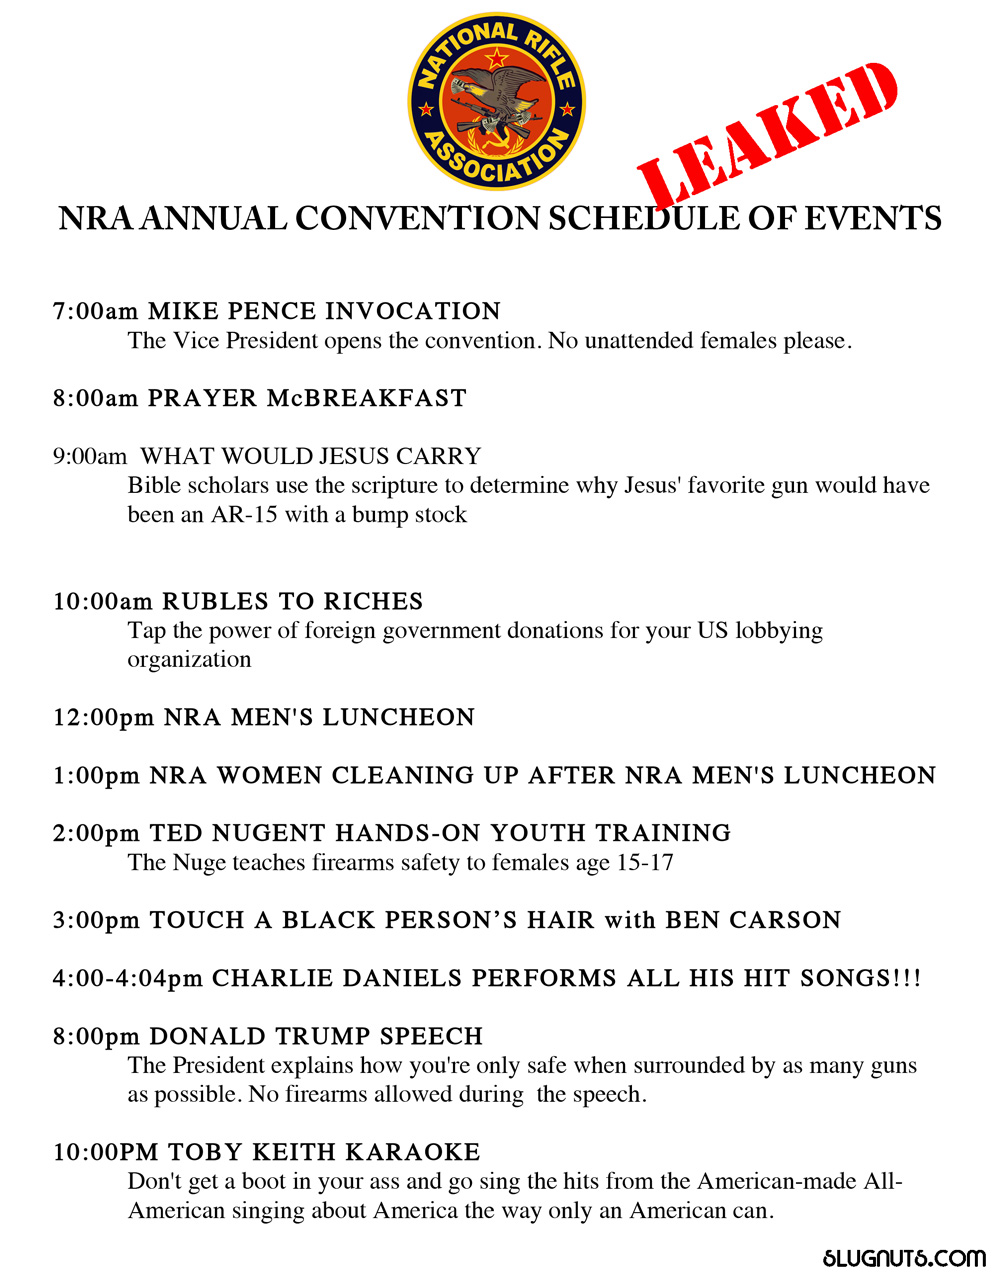 Leaked Copy of the NRA's Schedule of Events